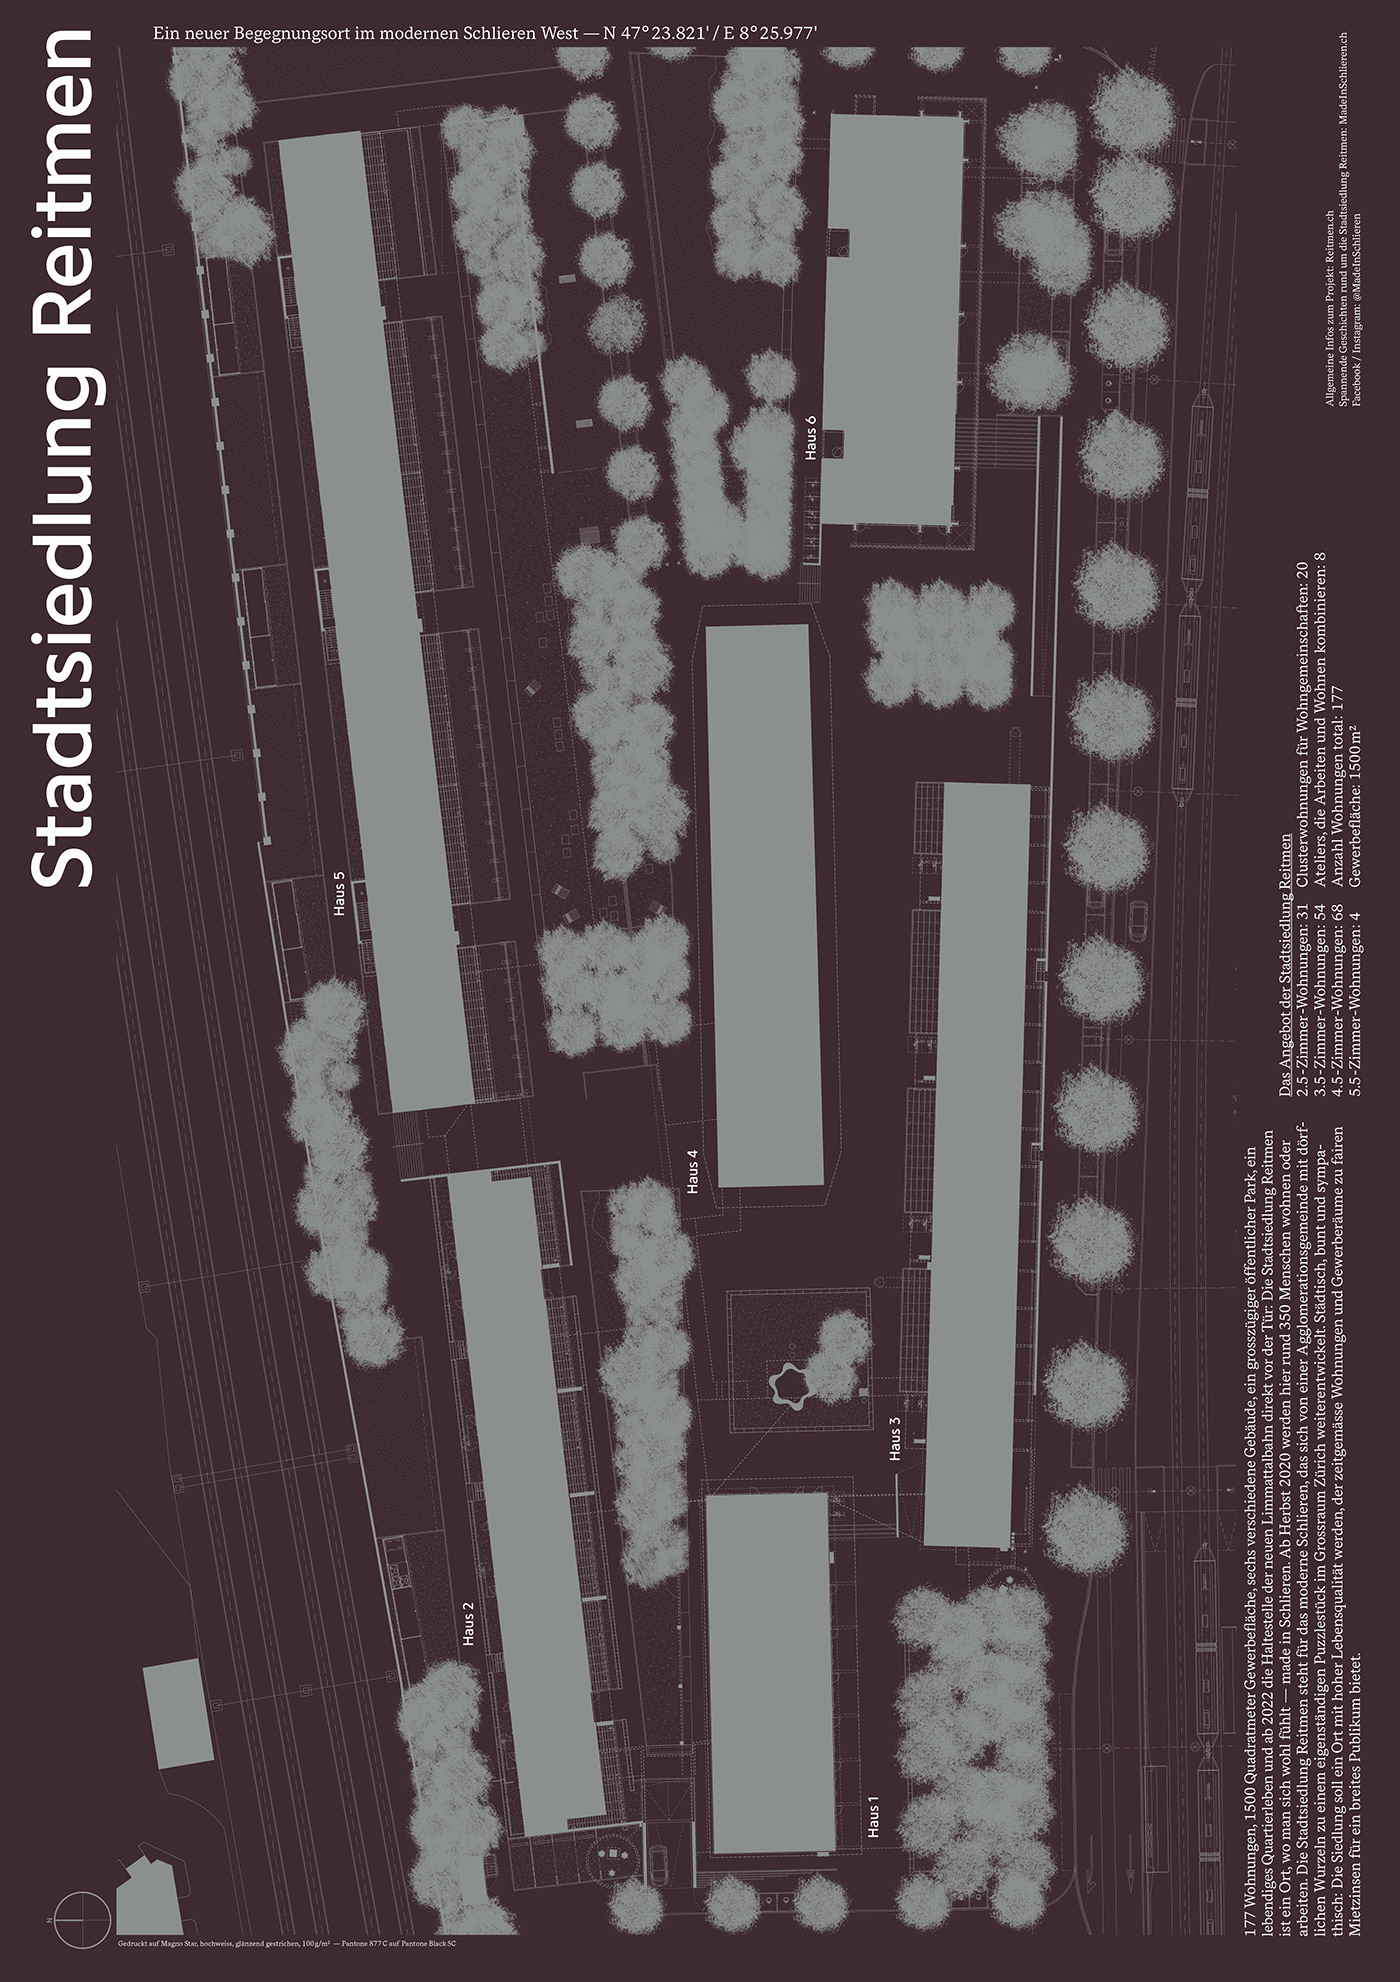 architecture design ArtDirection graphicdesign infographic poster corporatedesign branding  graphic typography